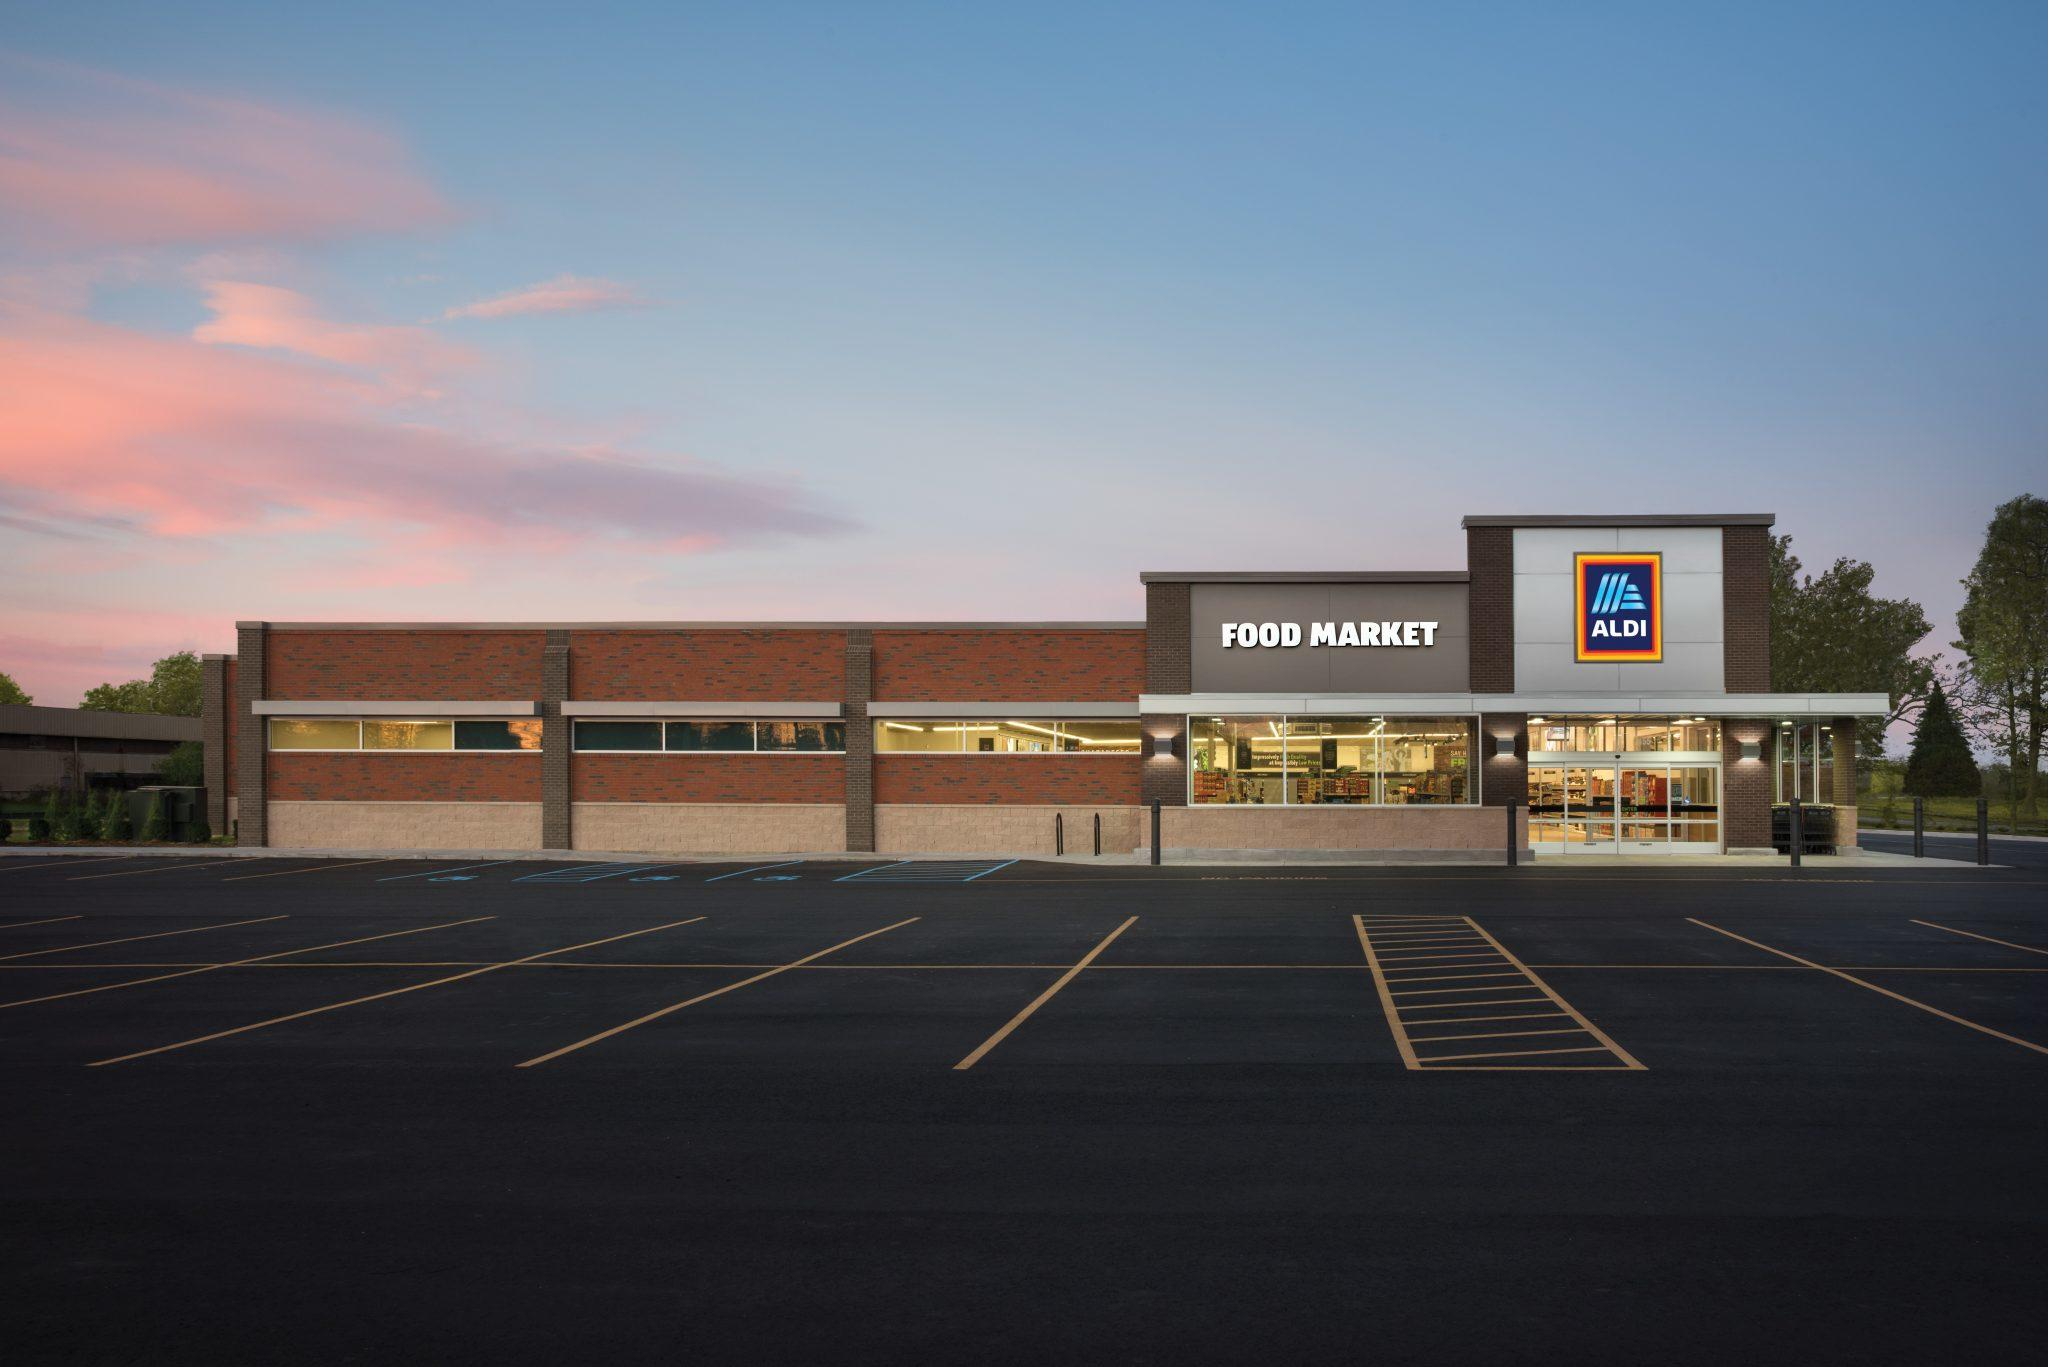 Shopping and Saving at Aldi: What to Expect